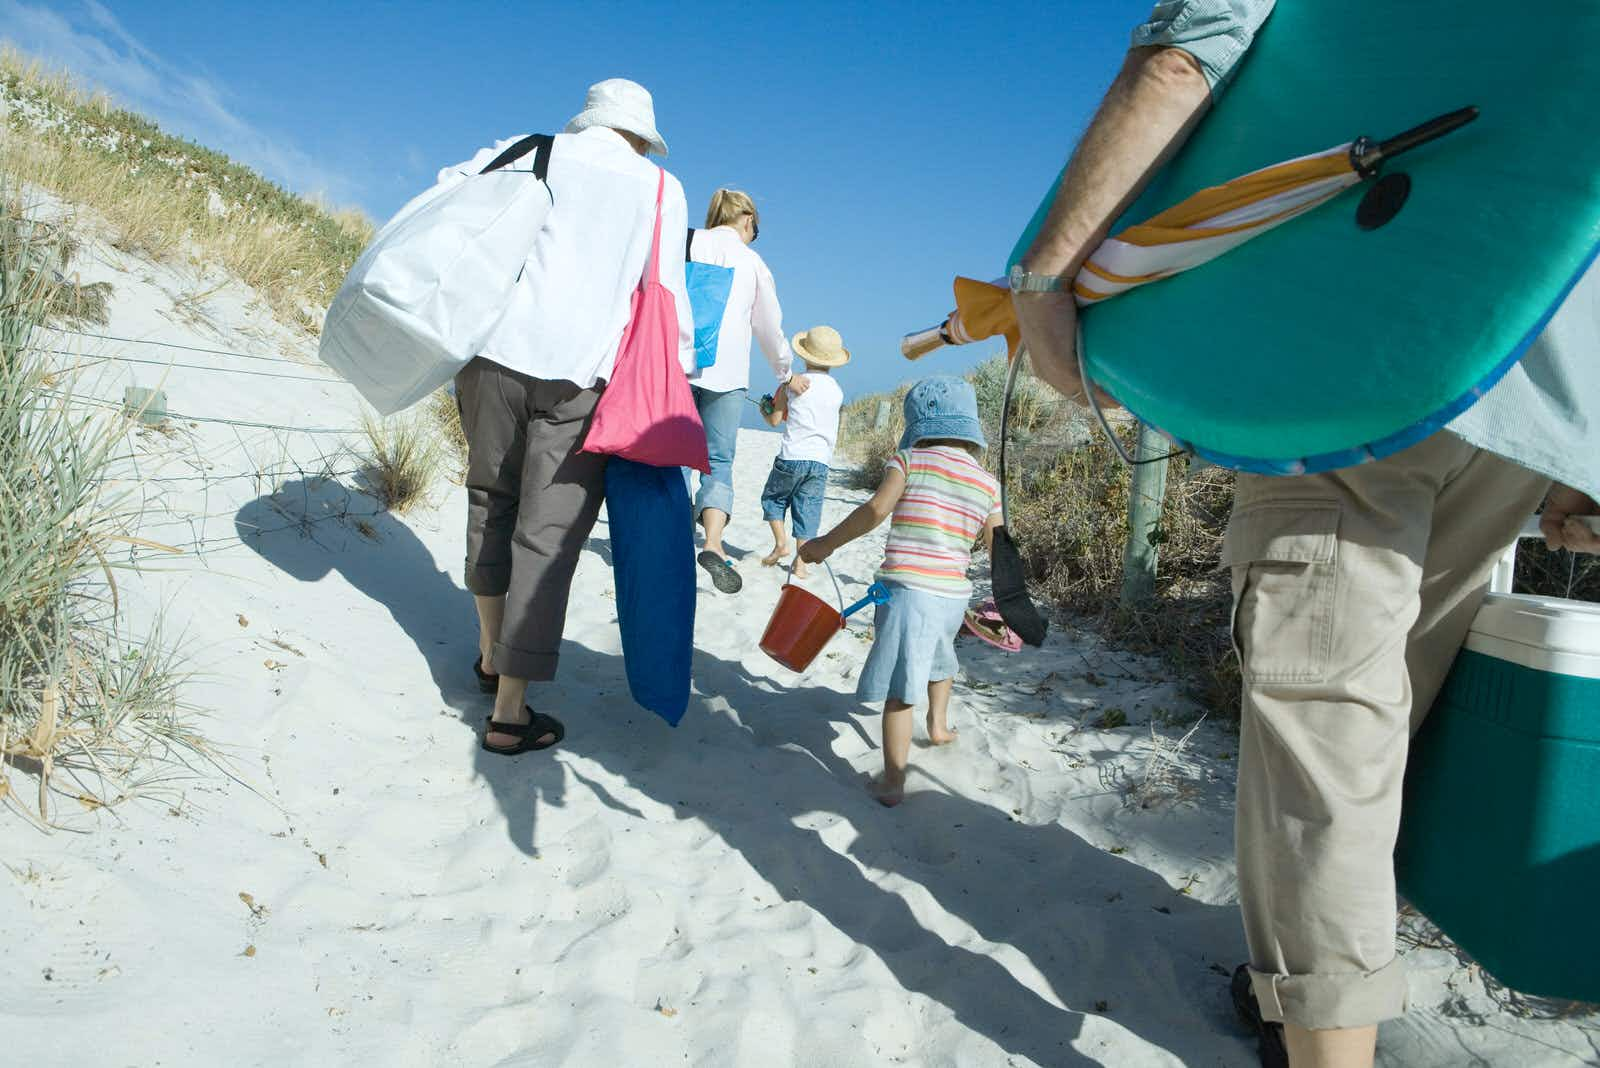 Rear view of a family group of three adults and two young children, make their way through sand dunes carrying a lot of beach items